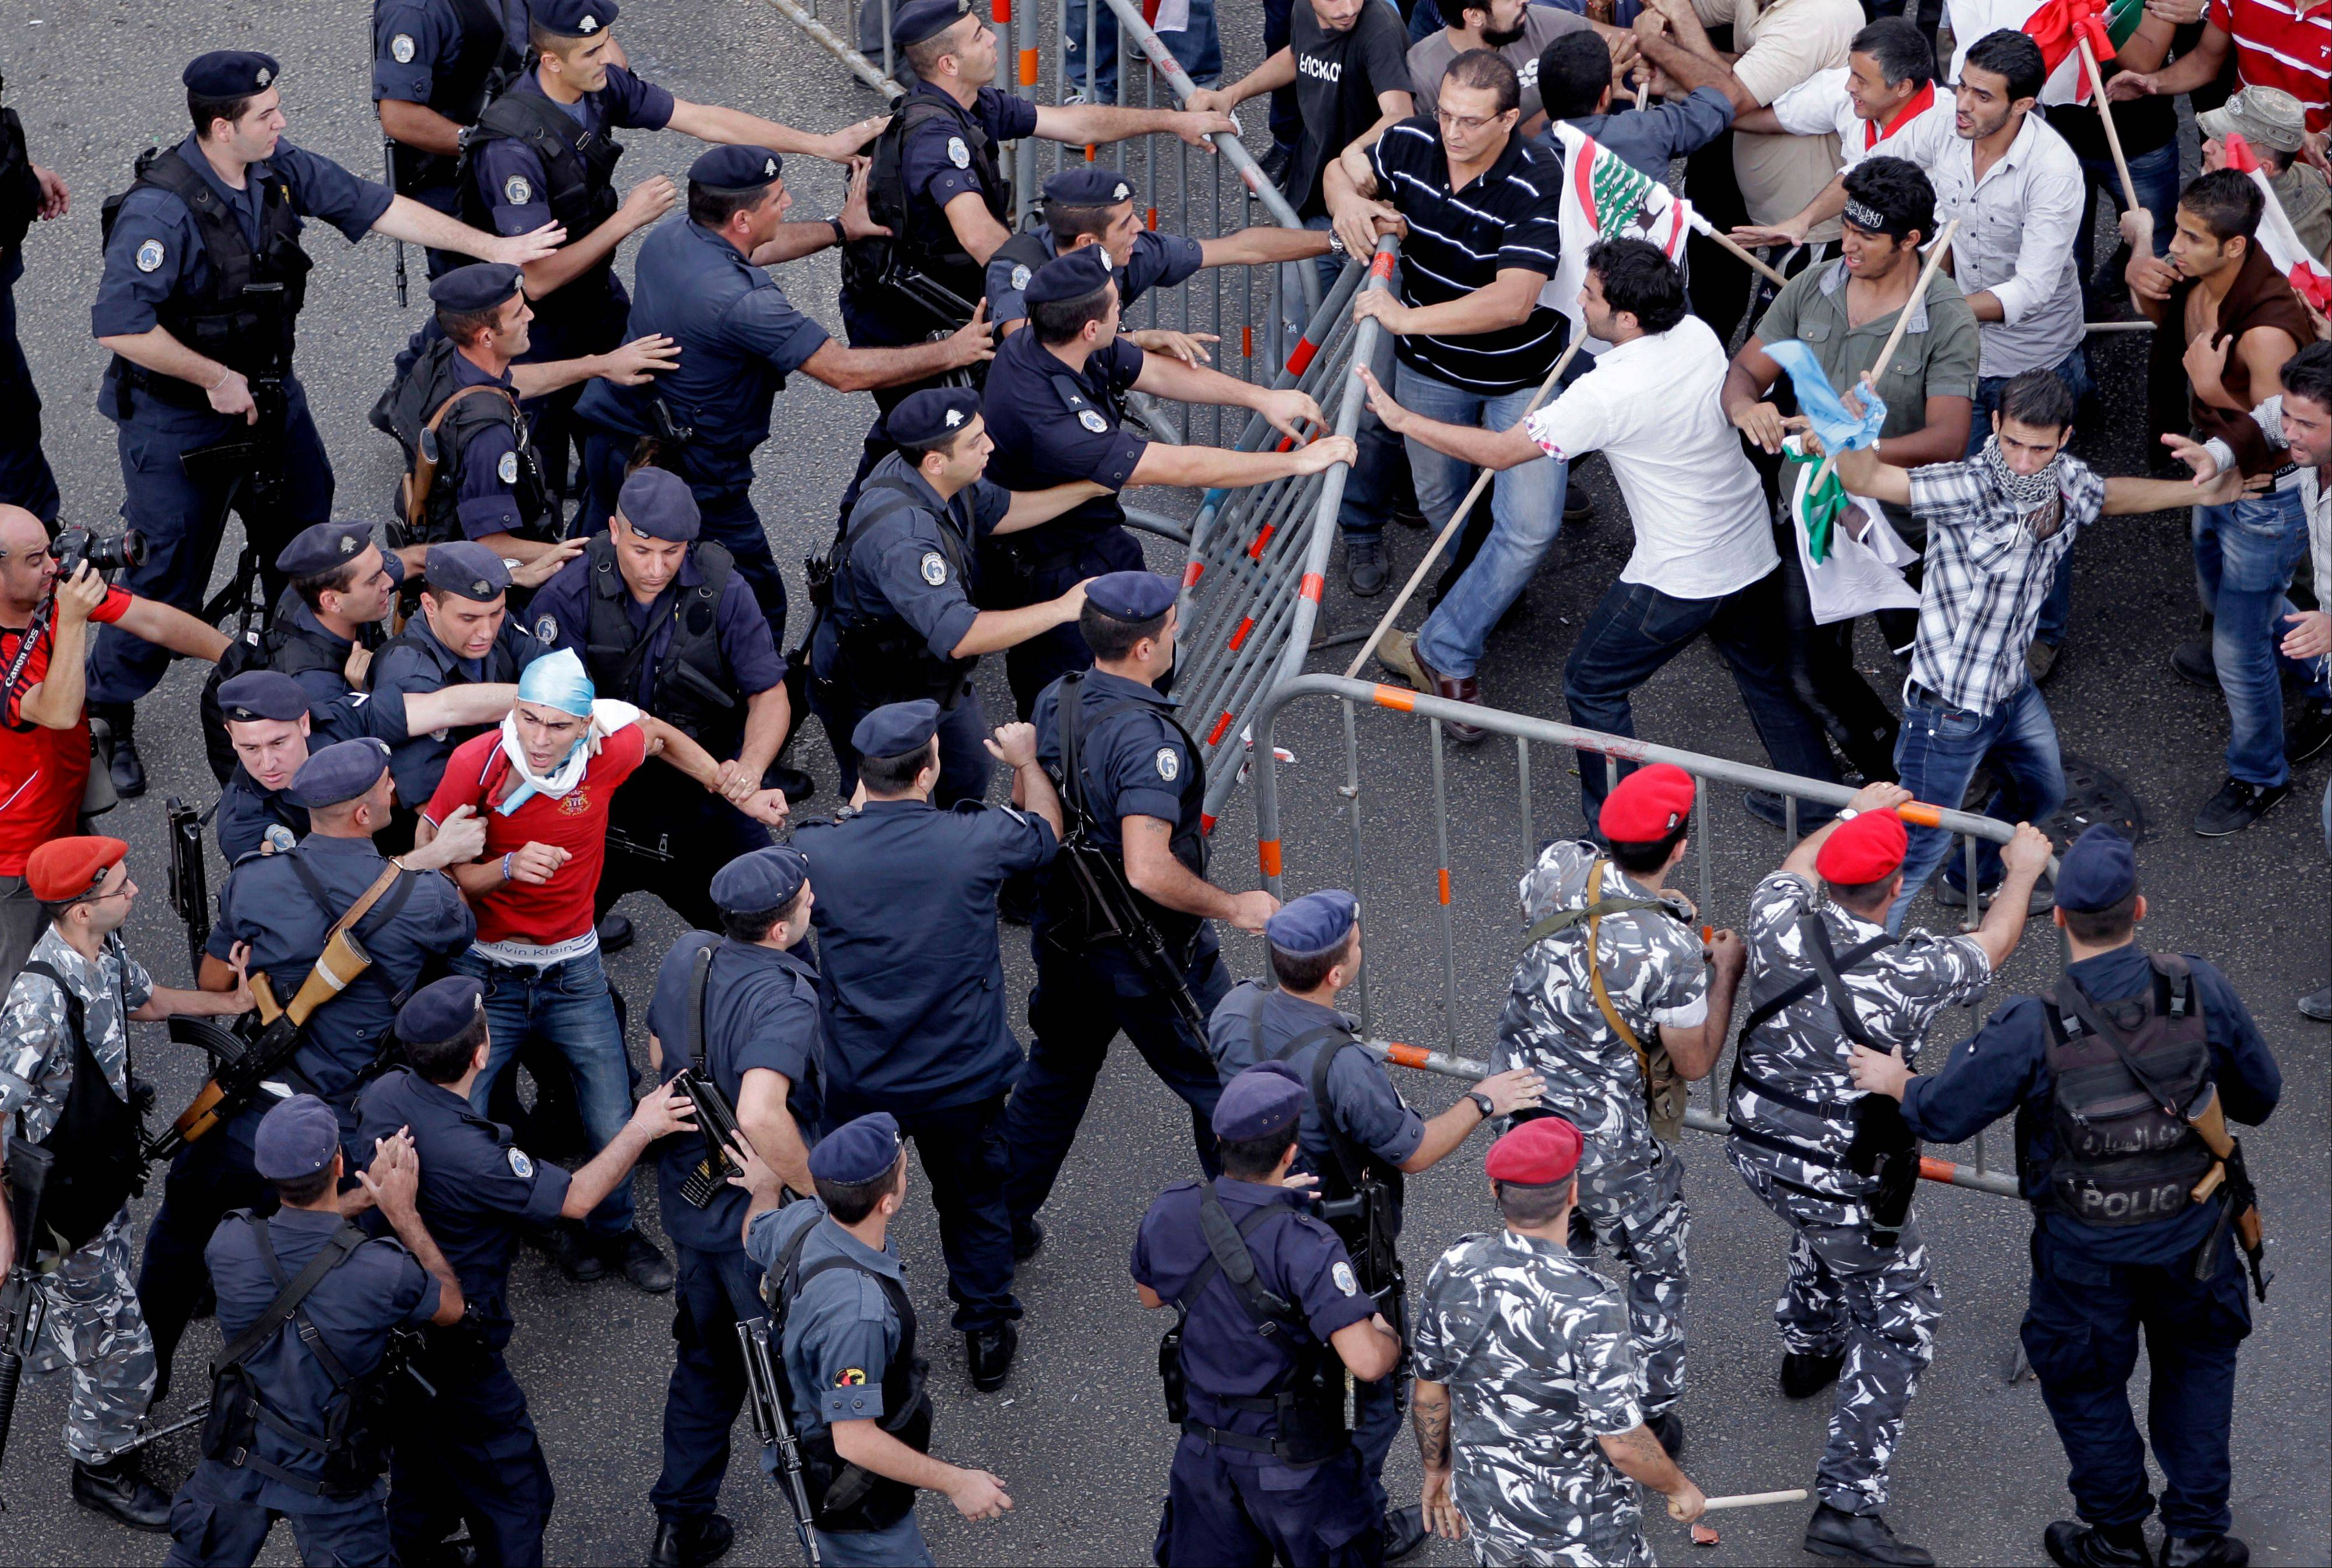 Police and protesters clash Sunday after the funeral of Brig. Gen. Wissam al-Hassan in Beirut, Lebanon.